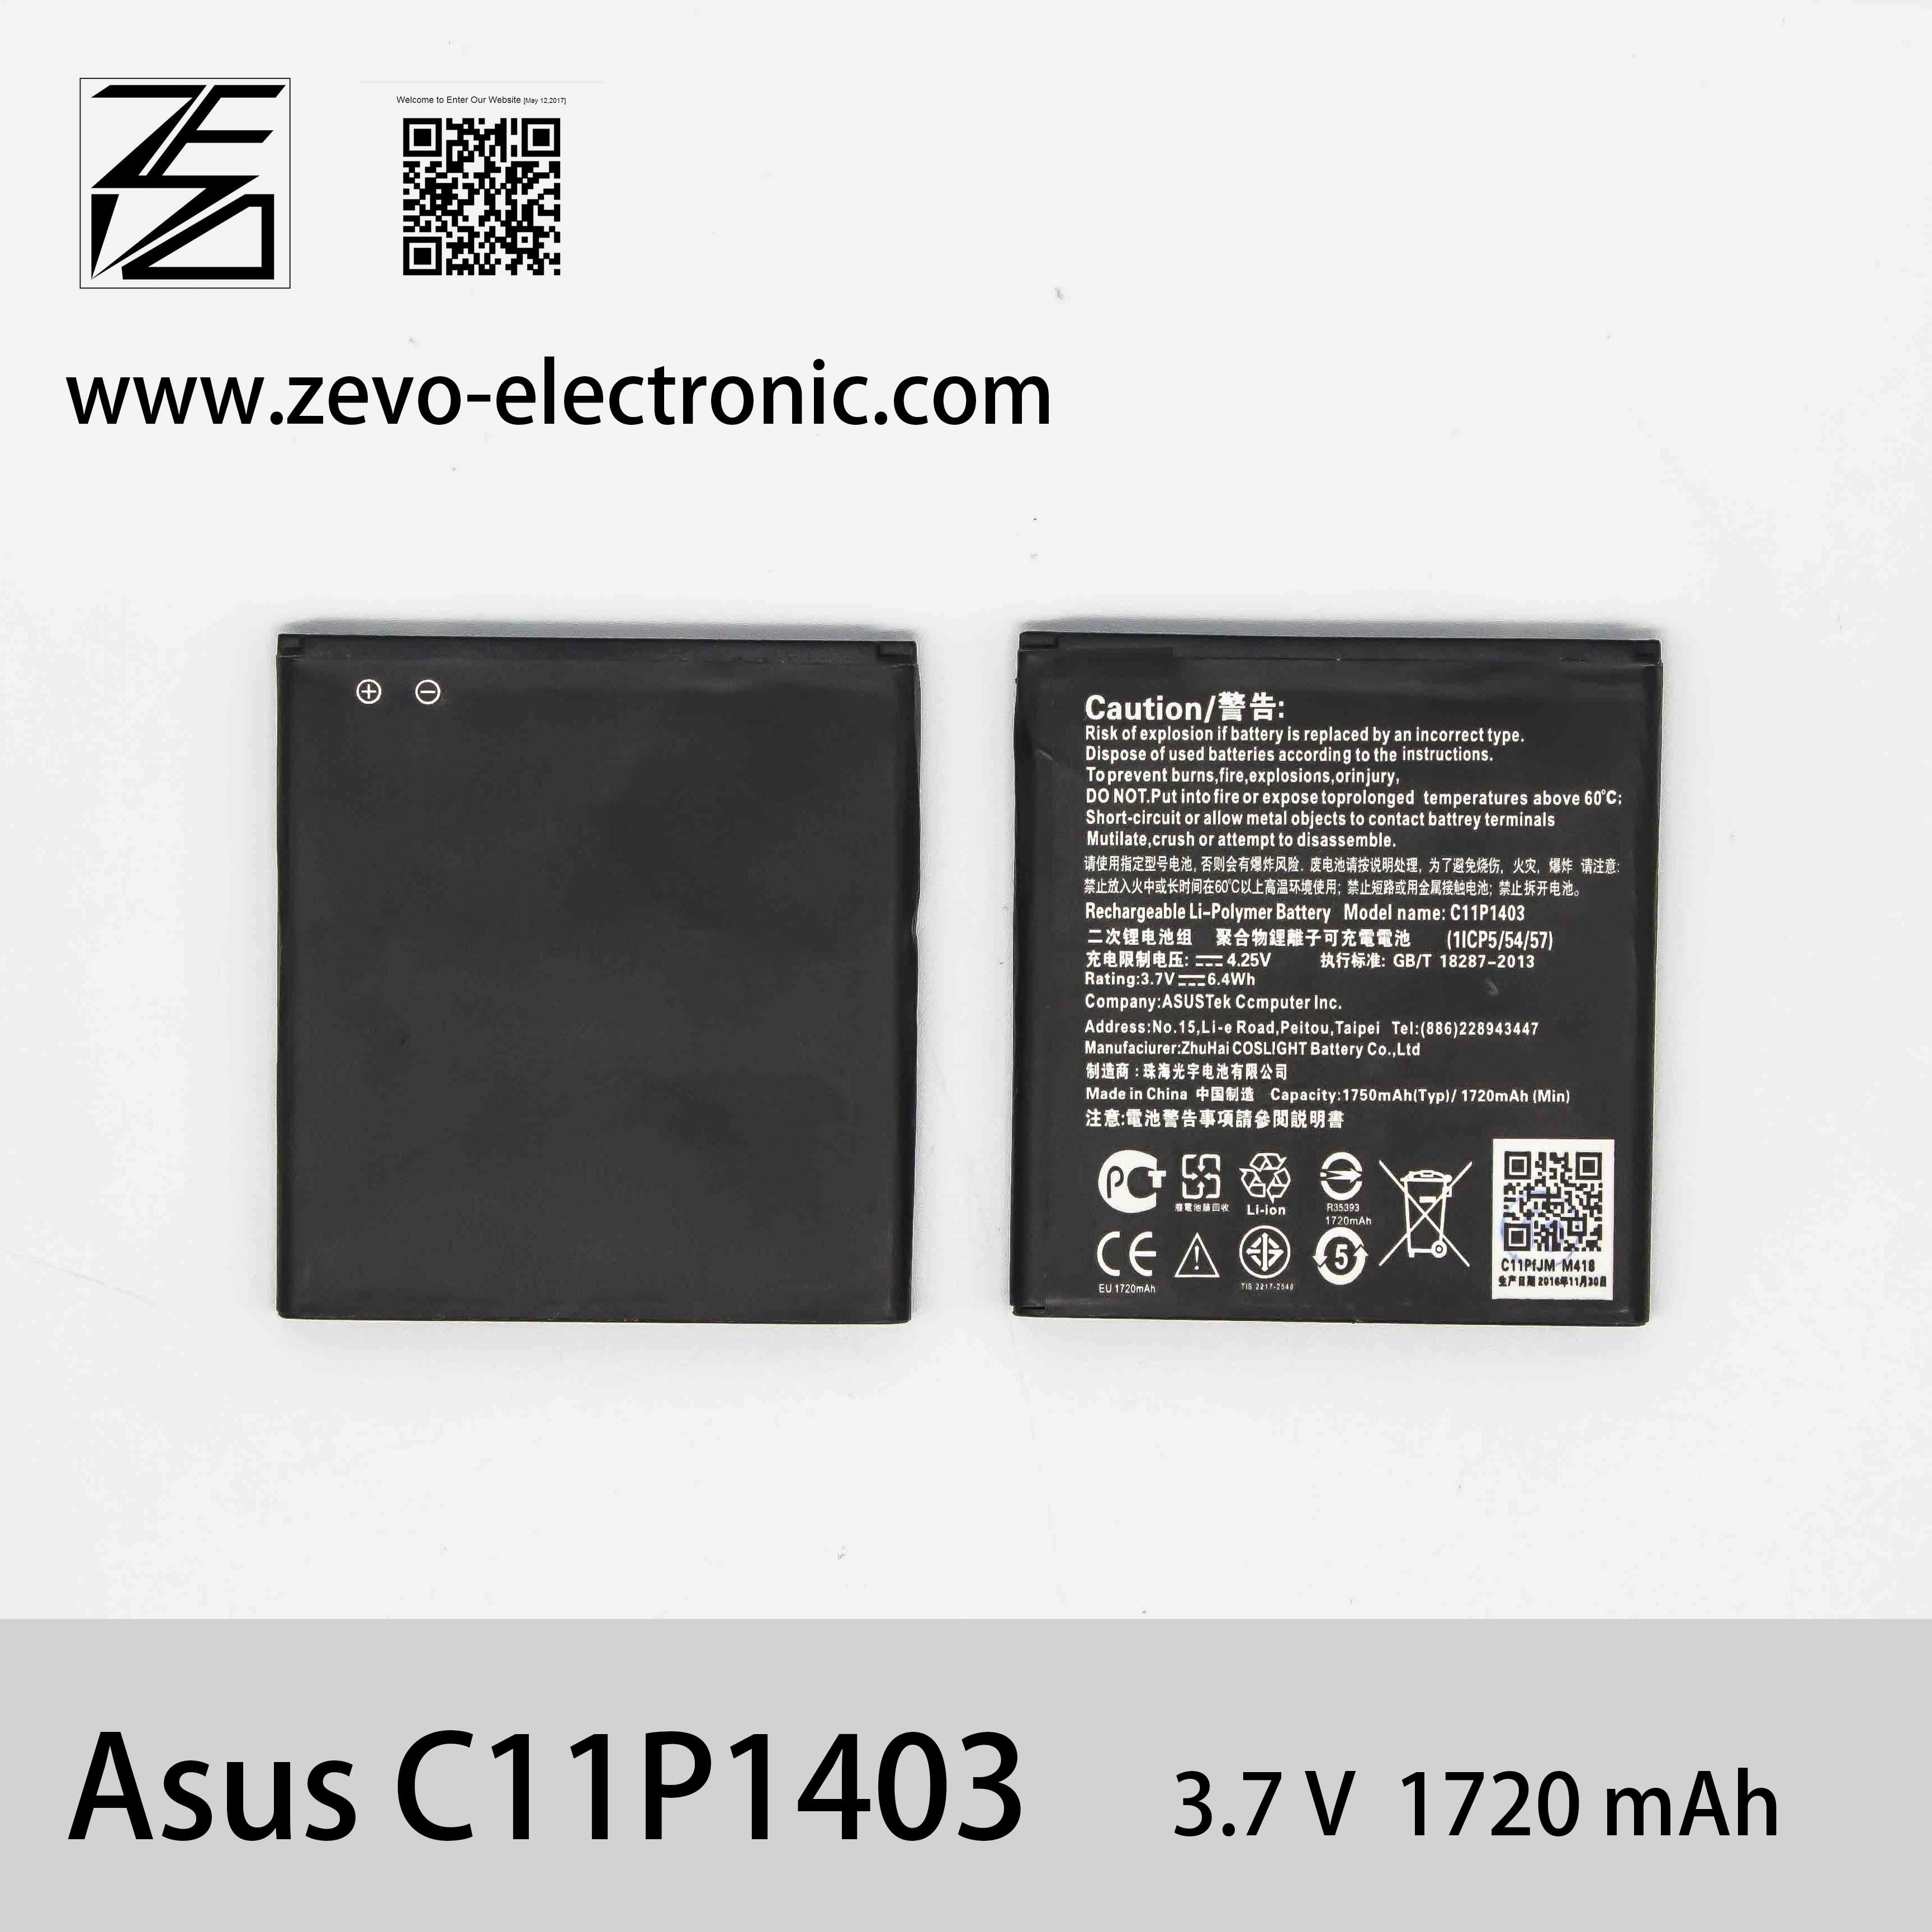 China High Capacity Mobile Phone Battery C11p1403 For Asus Circuit Charger Manufacturer